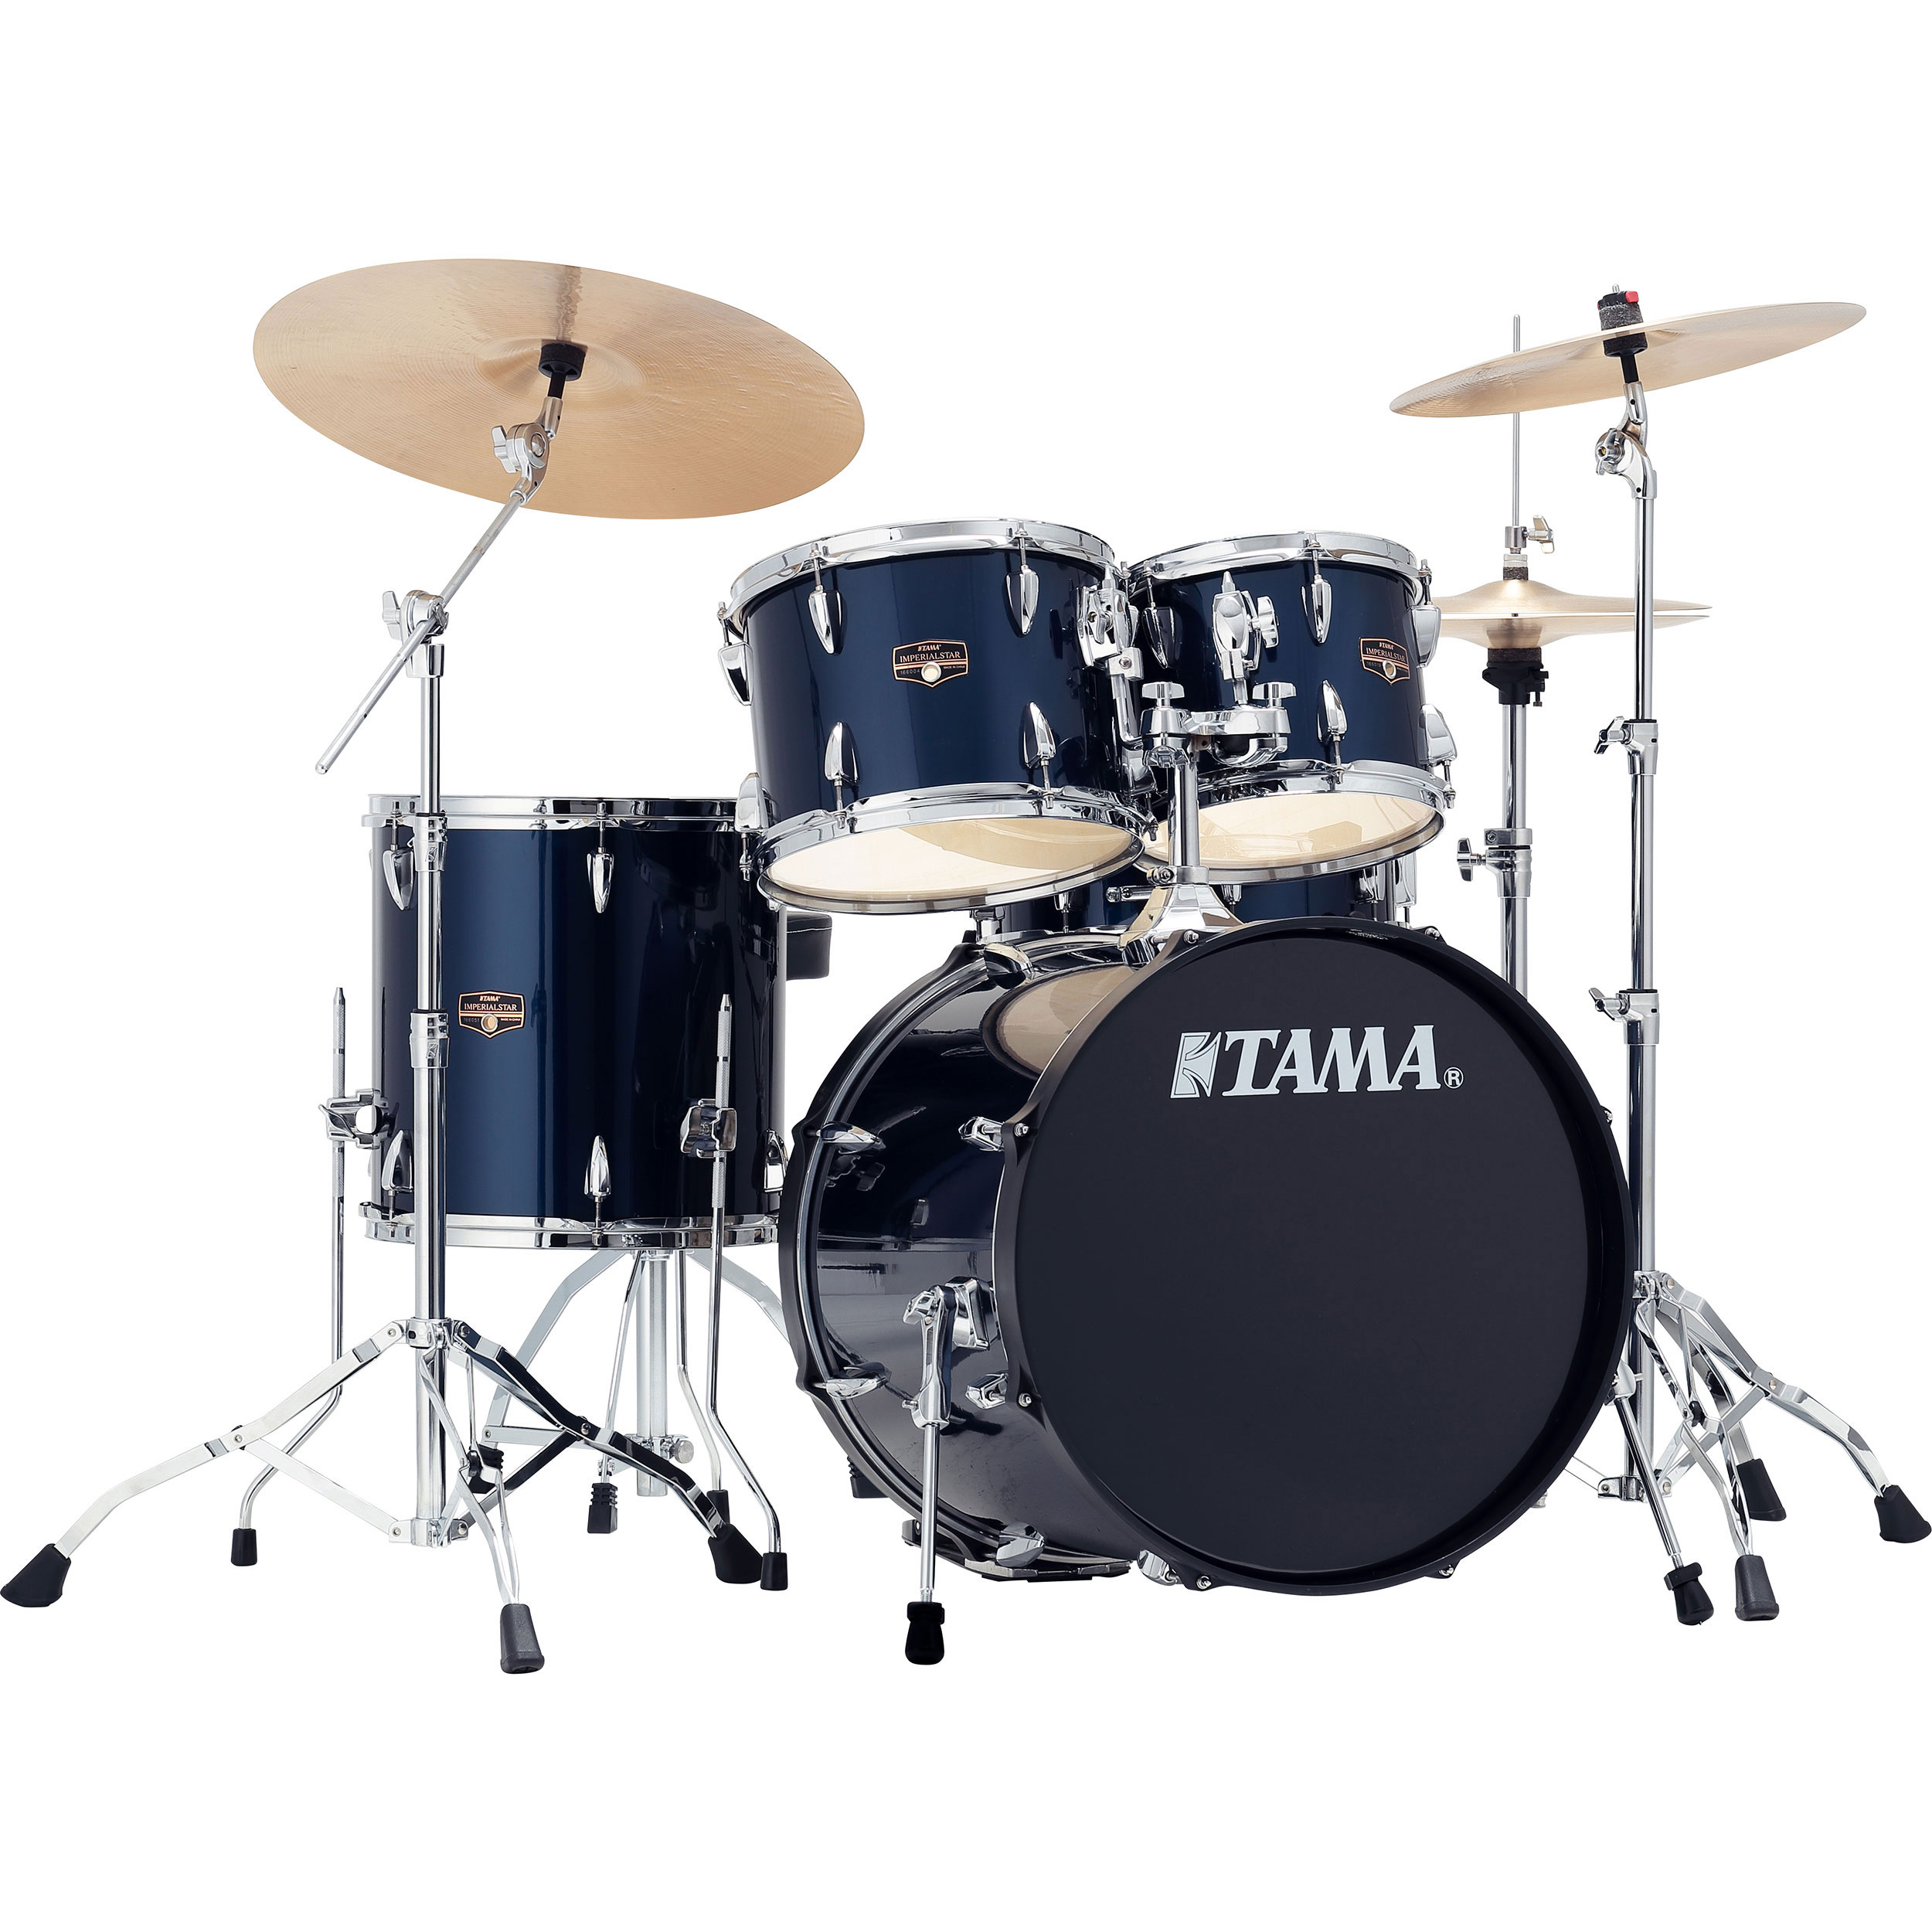 tama imperialstar 5 piece drum set with hardware and cymbals 20 10 12 14 14. Black Bedroom Furniture Sets. Home Design Ideas